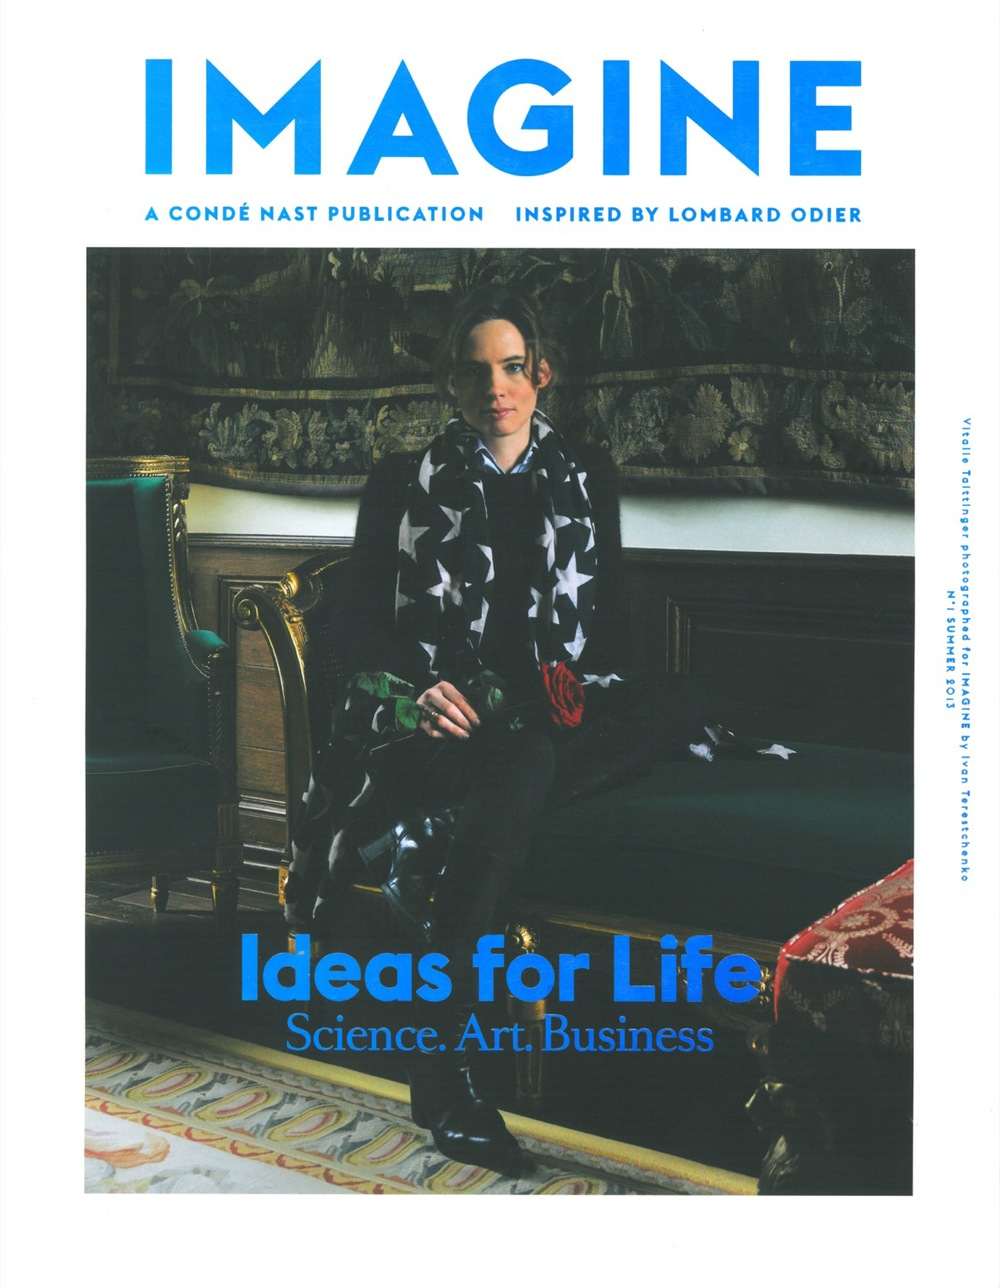 ImagineMag copy.jpg